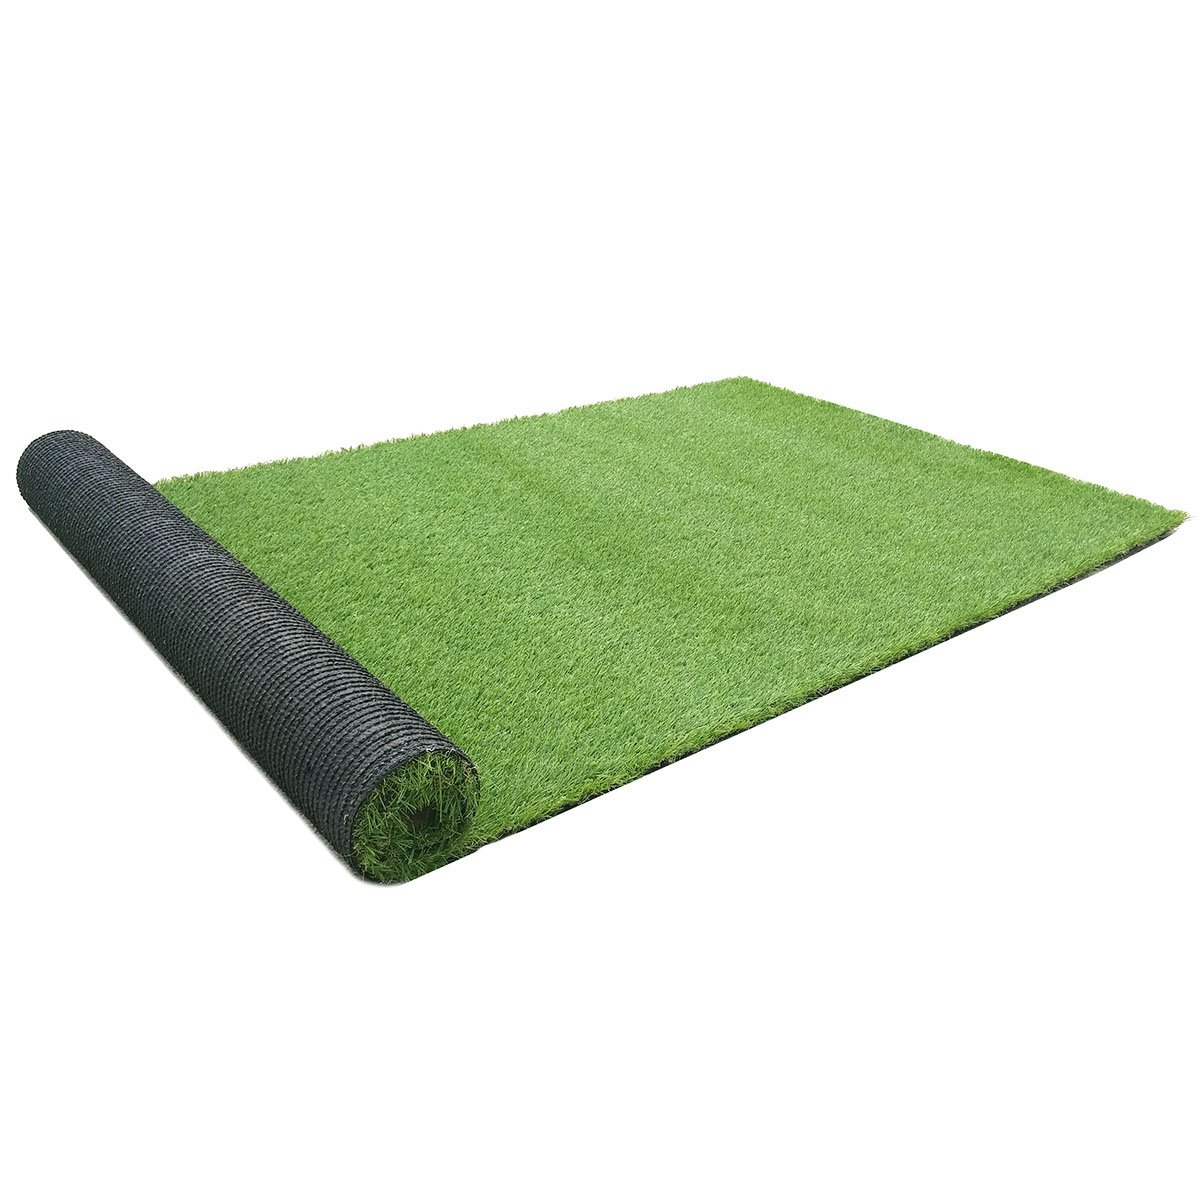 RURALITY Artificial Grass Turf Fake Grass for Patio,Yard and Balcony Decoration (6 Ft X 9 Ft)